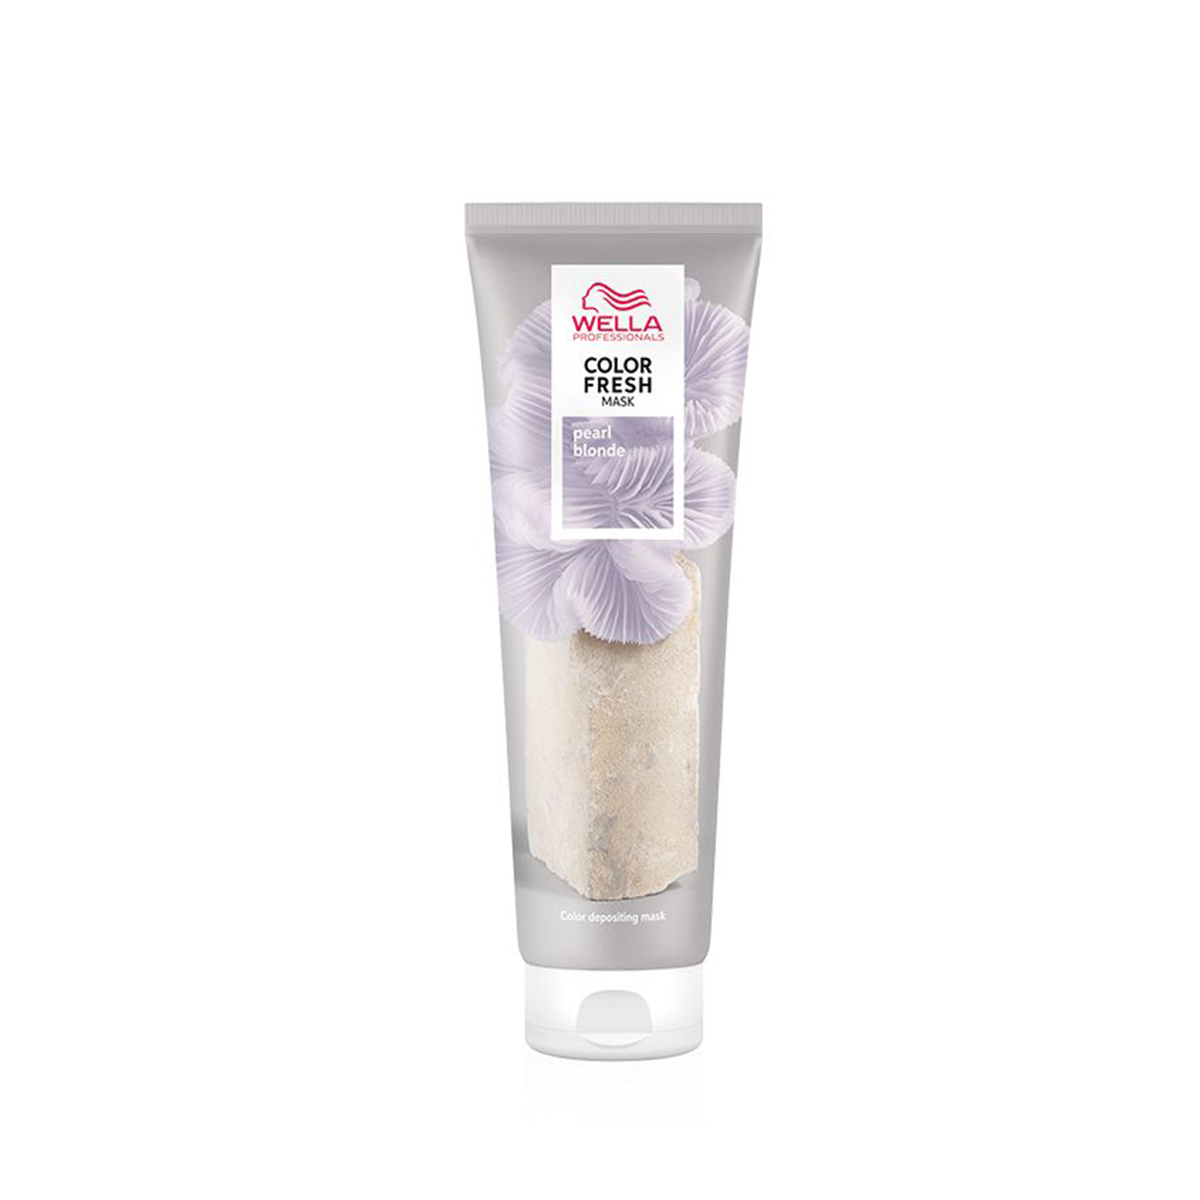 Masque Color Fresh Wella Pearl Blonde 150ml